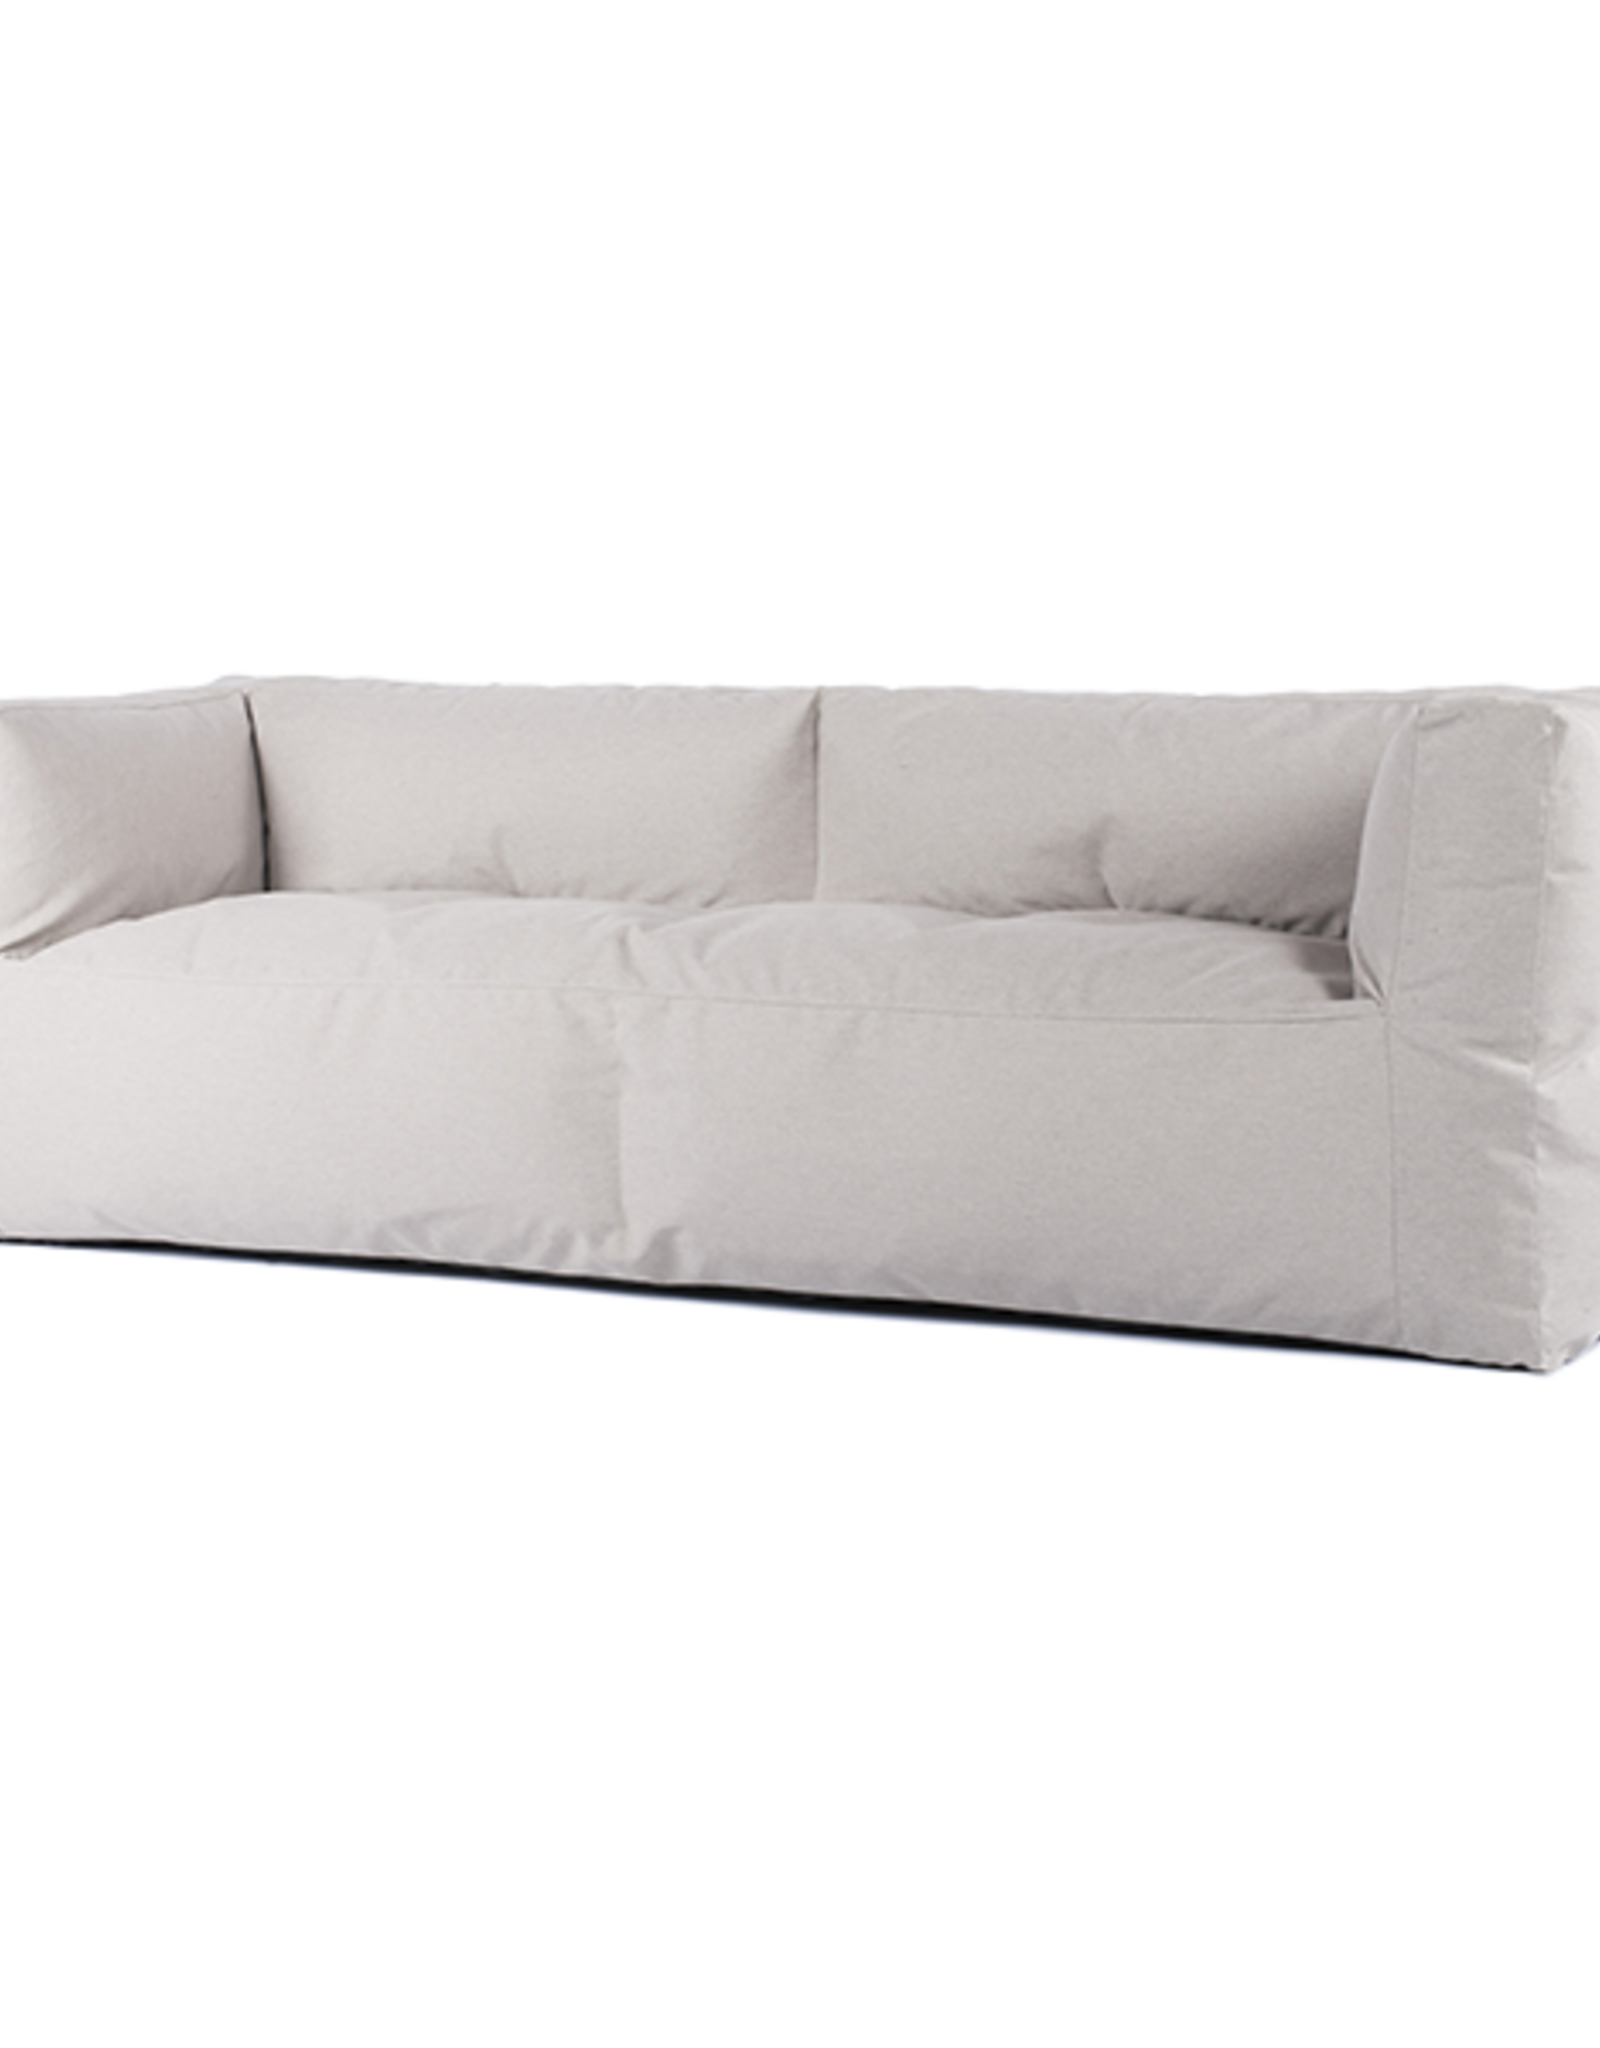 Bryck Bryck - couch 3 zit - Ecocollection - Off white